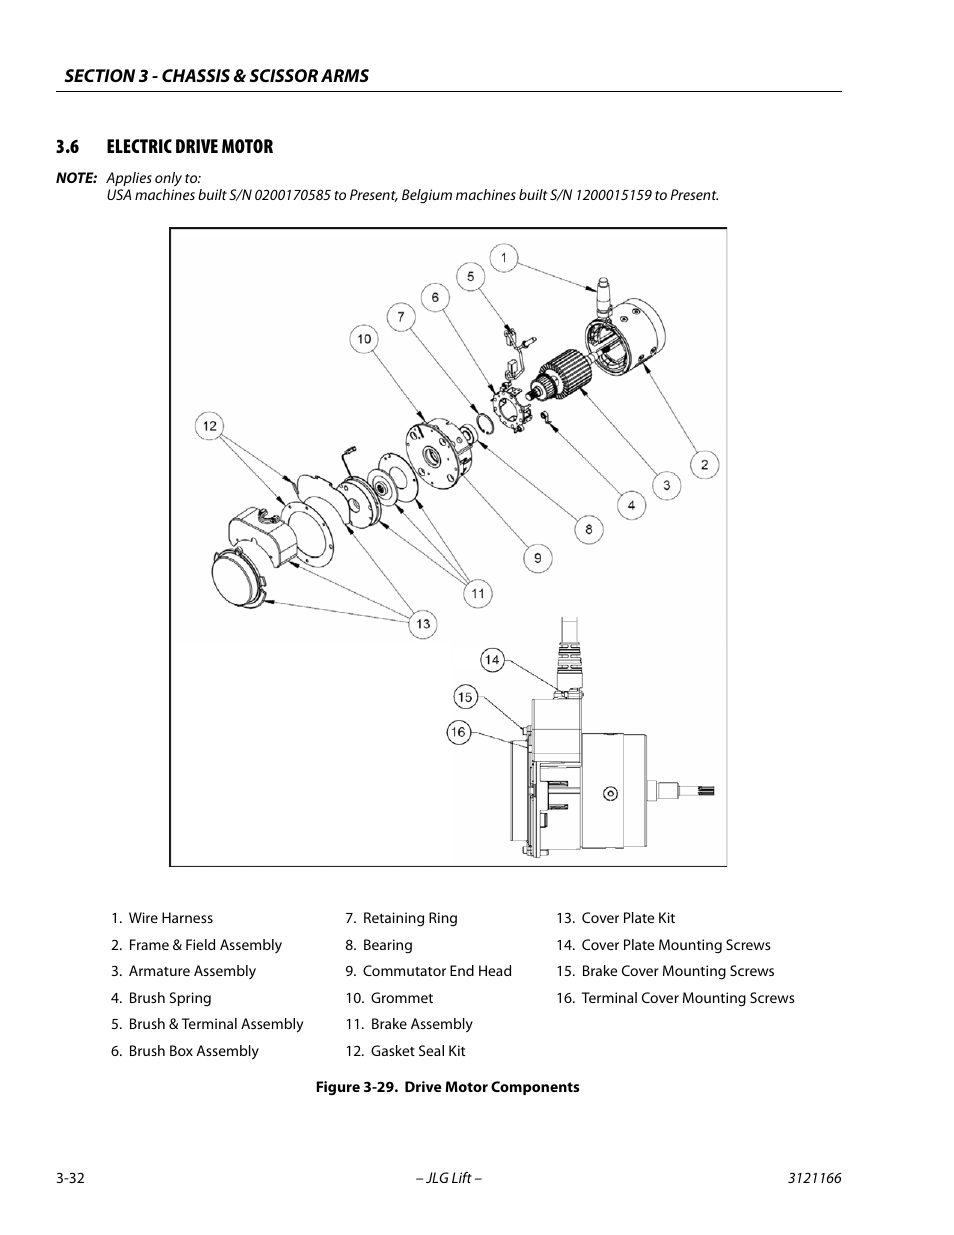 Jlg 3246e Wiring Diagram 3246 Joystick Hight Resolution Of 6 Electric Drive Motor 32 Components